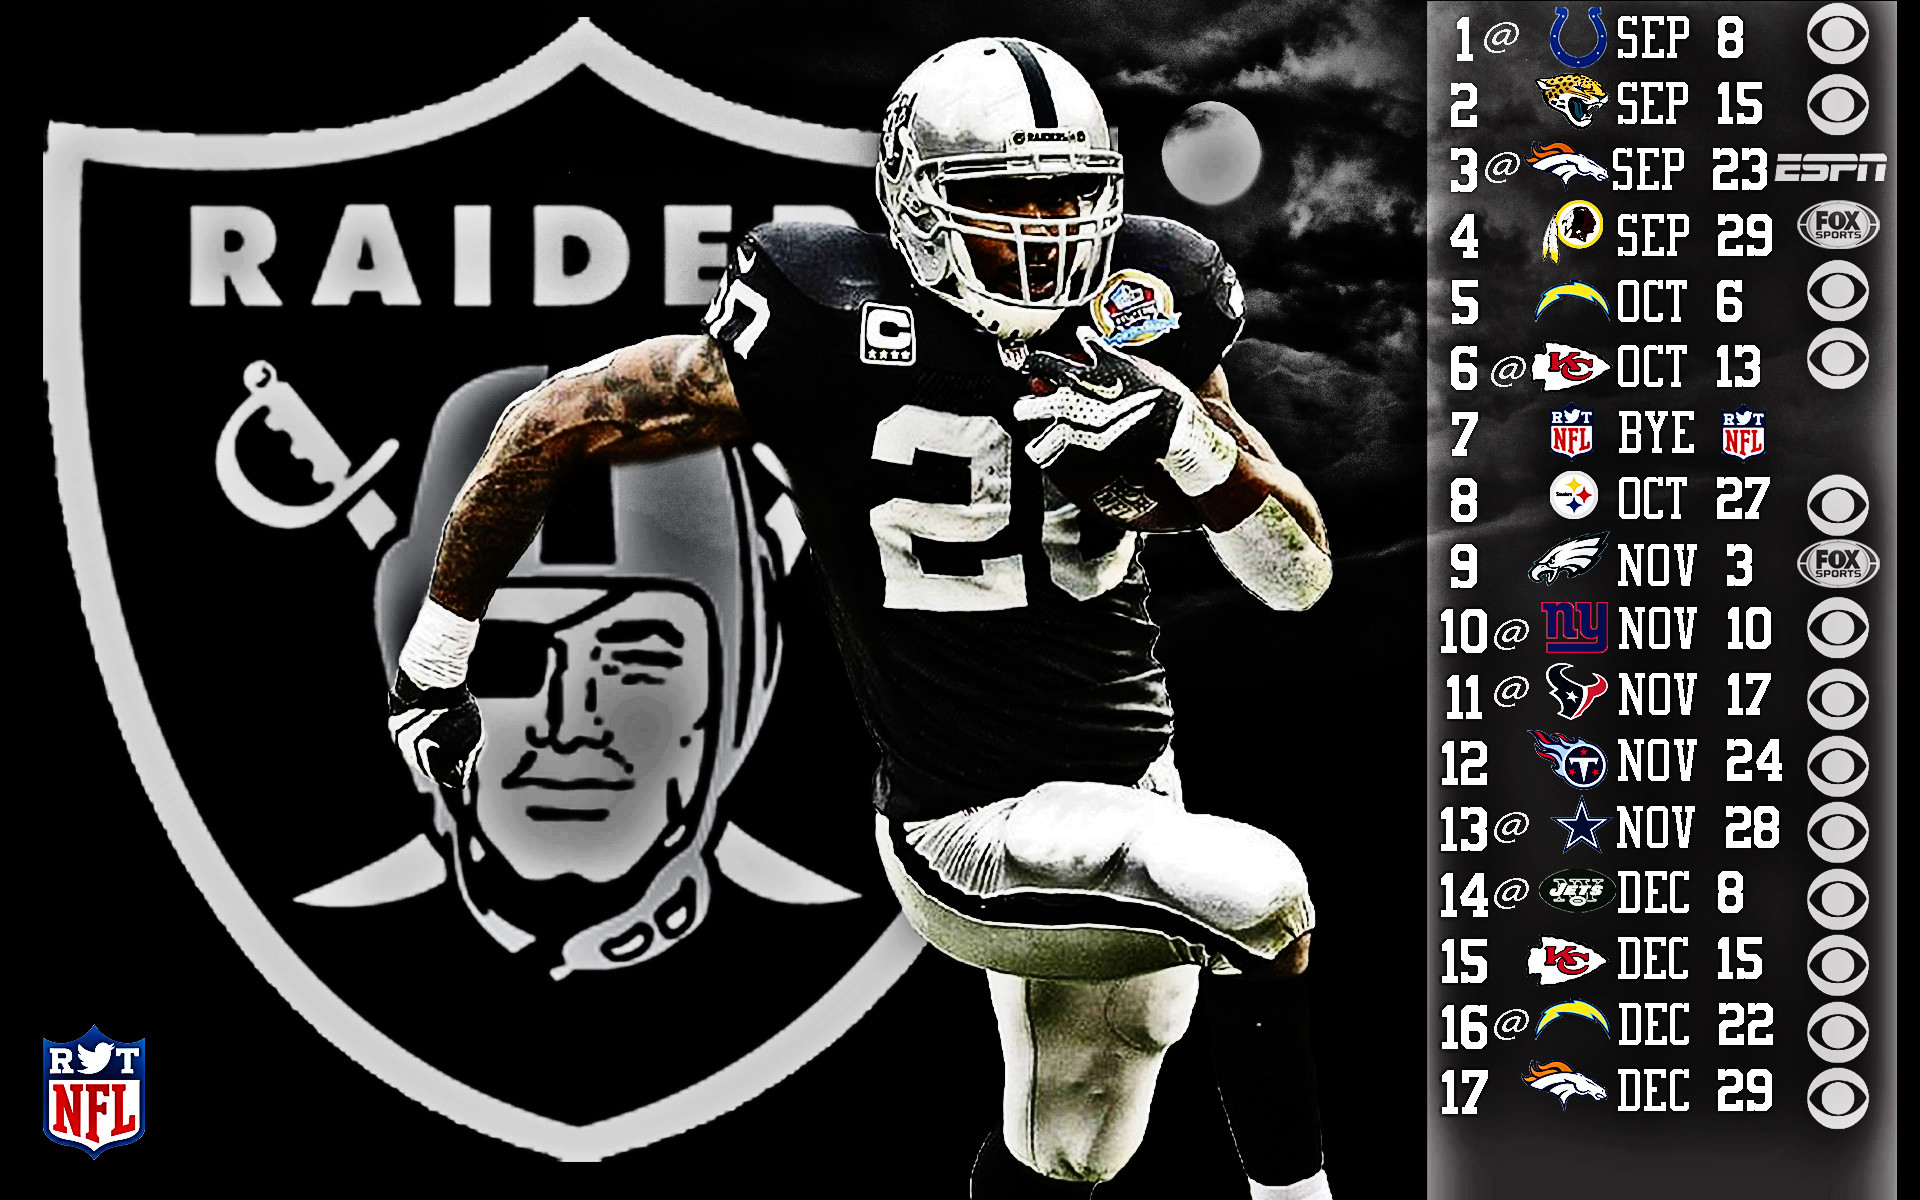 Cool Raiders Wallpaper 71 images